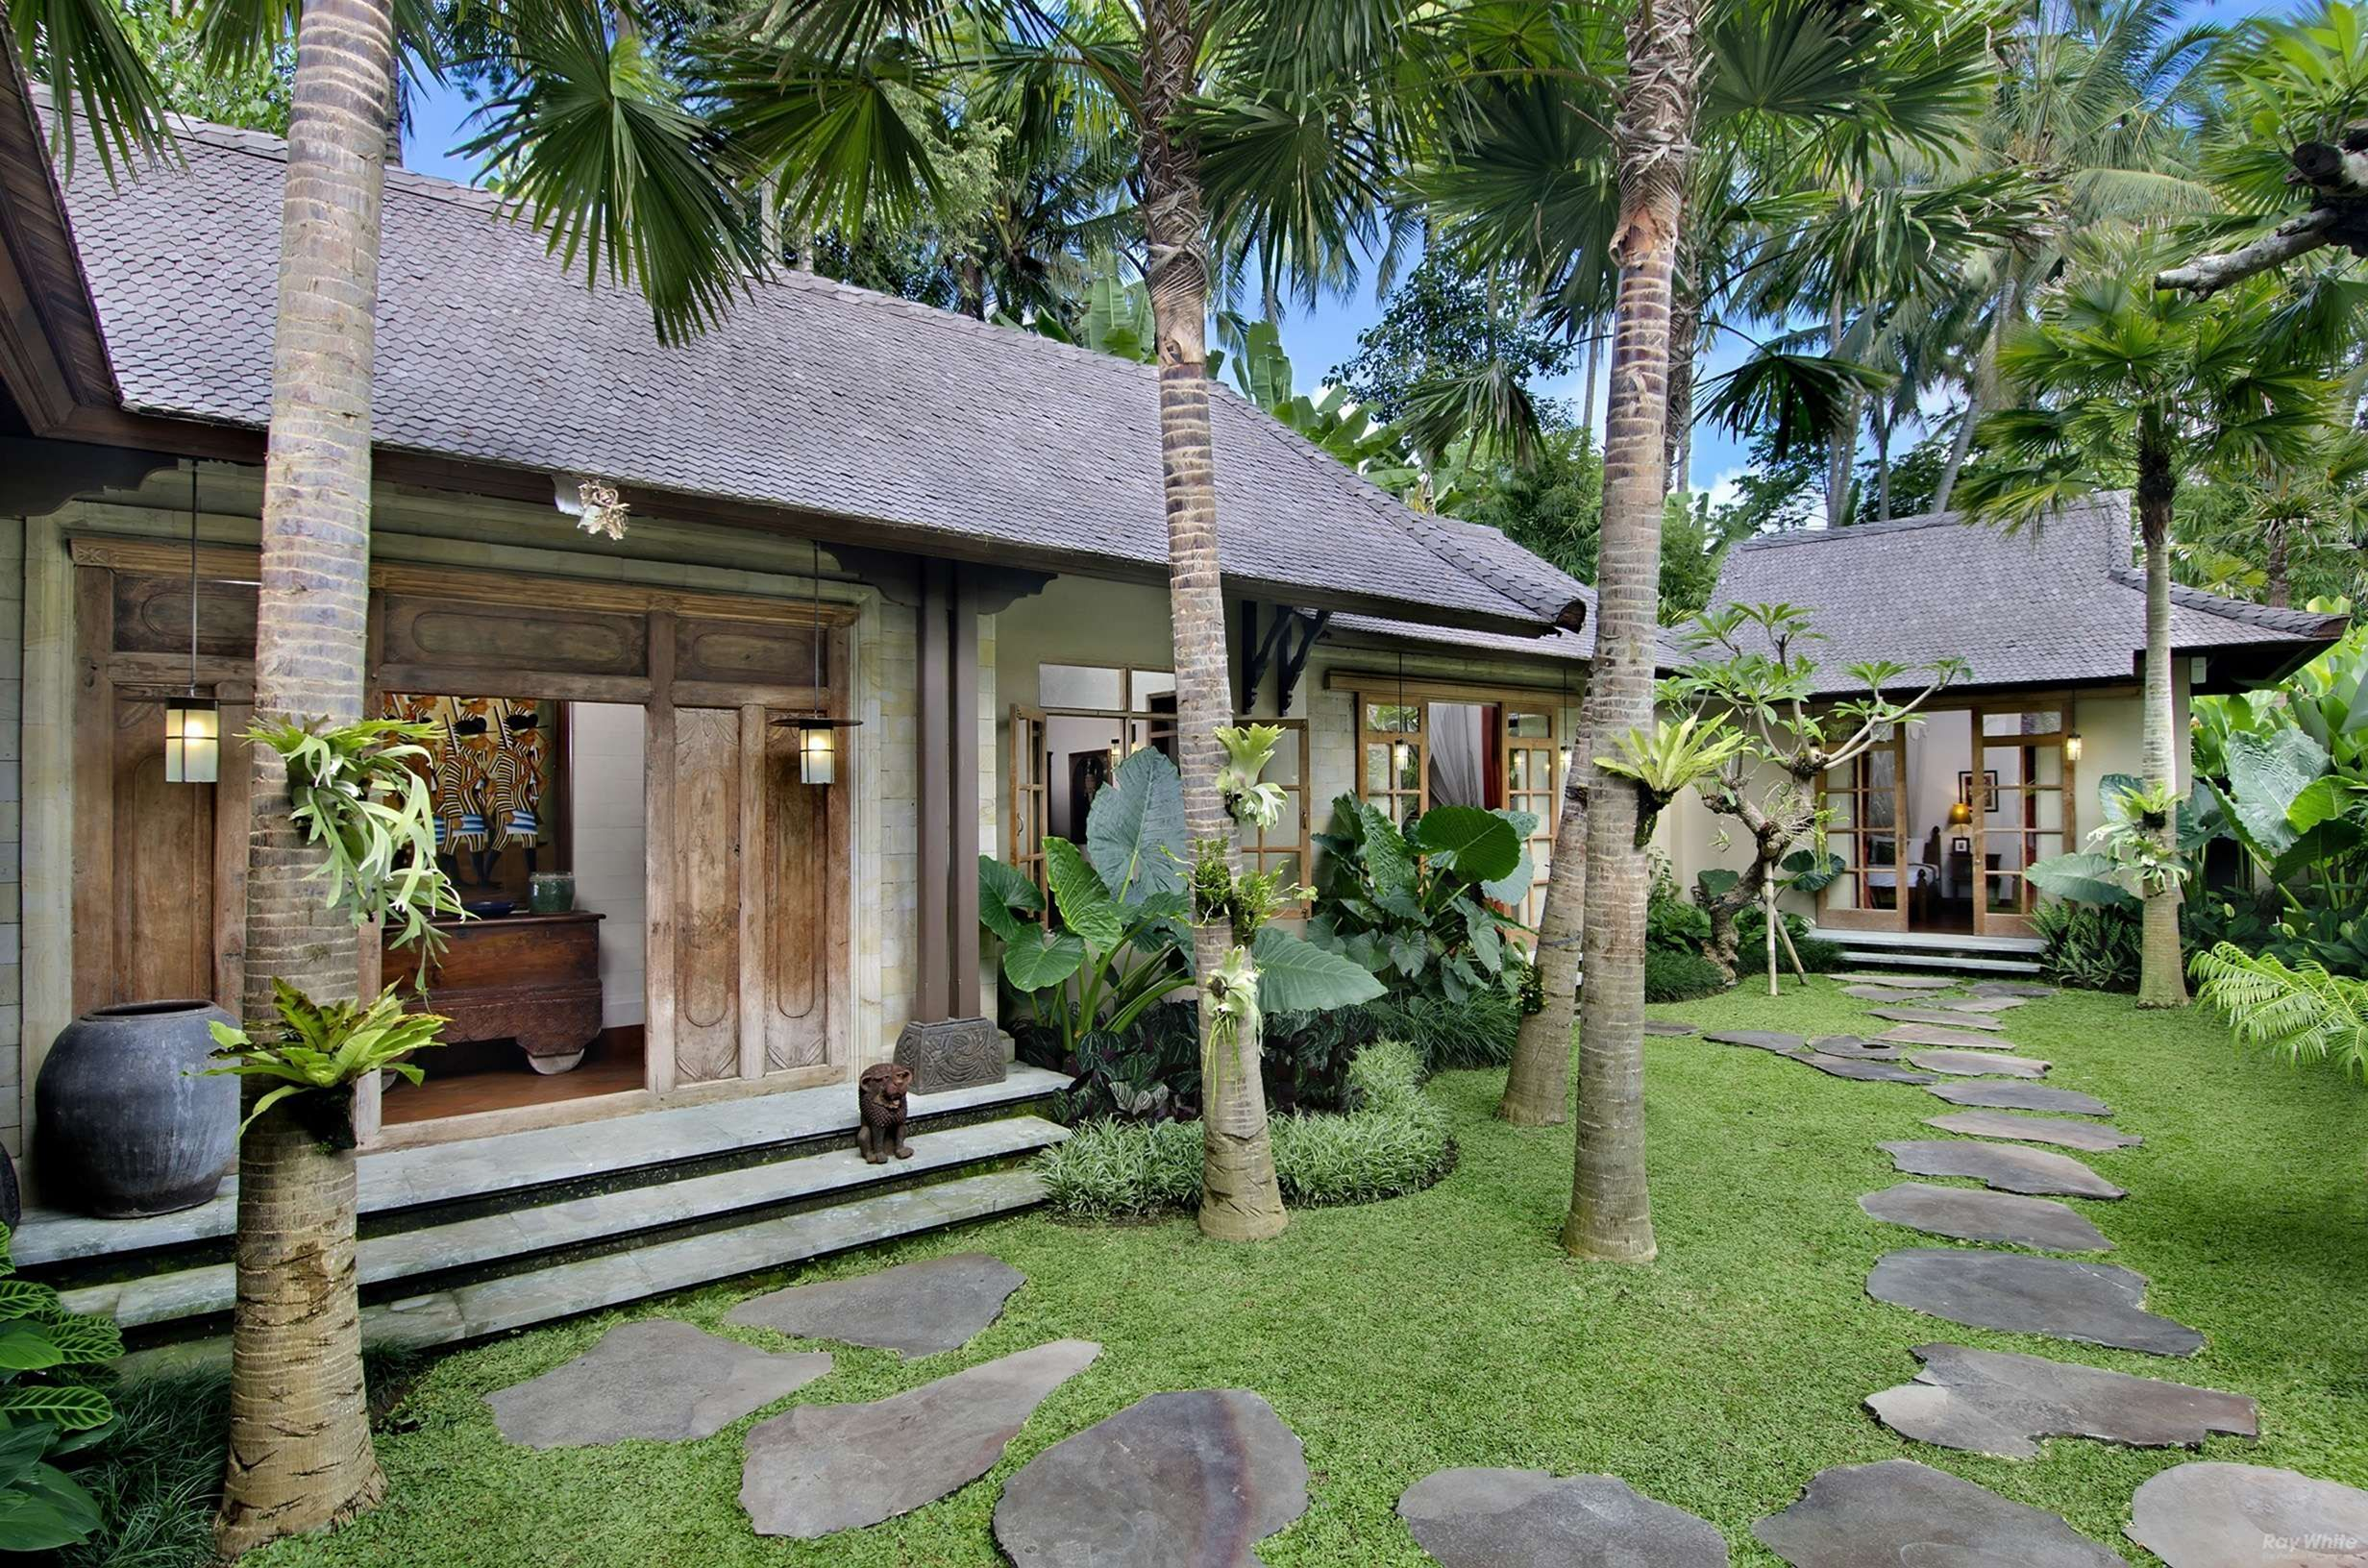 12 Most Popular Tropical House Design Ideas For Best Inspirations Tropical House Design Balinese Garden Tropical Houses